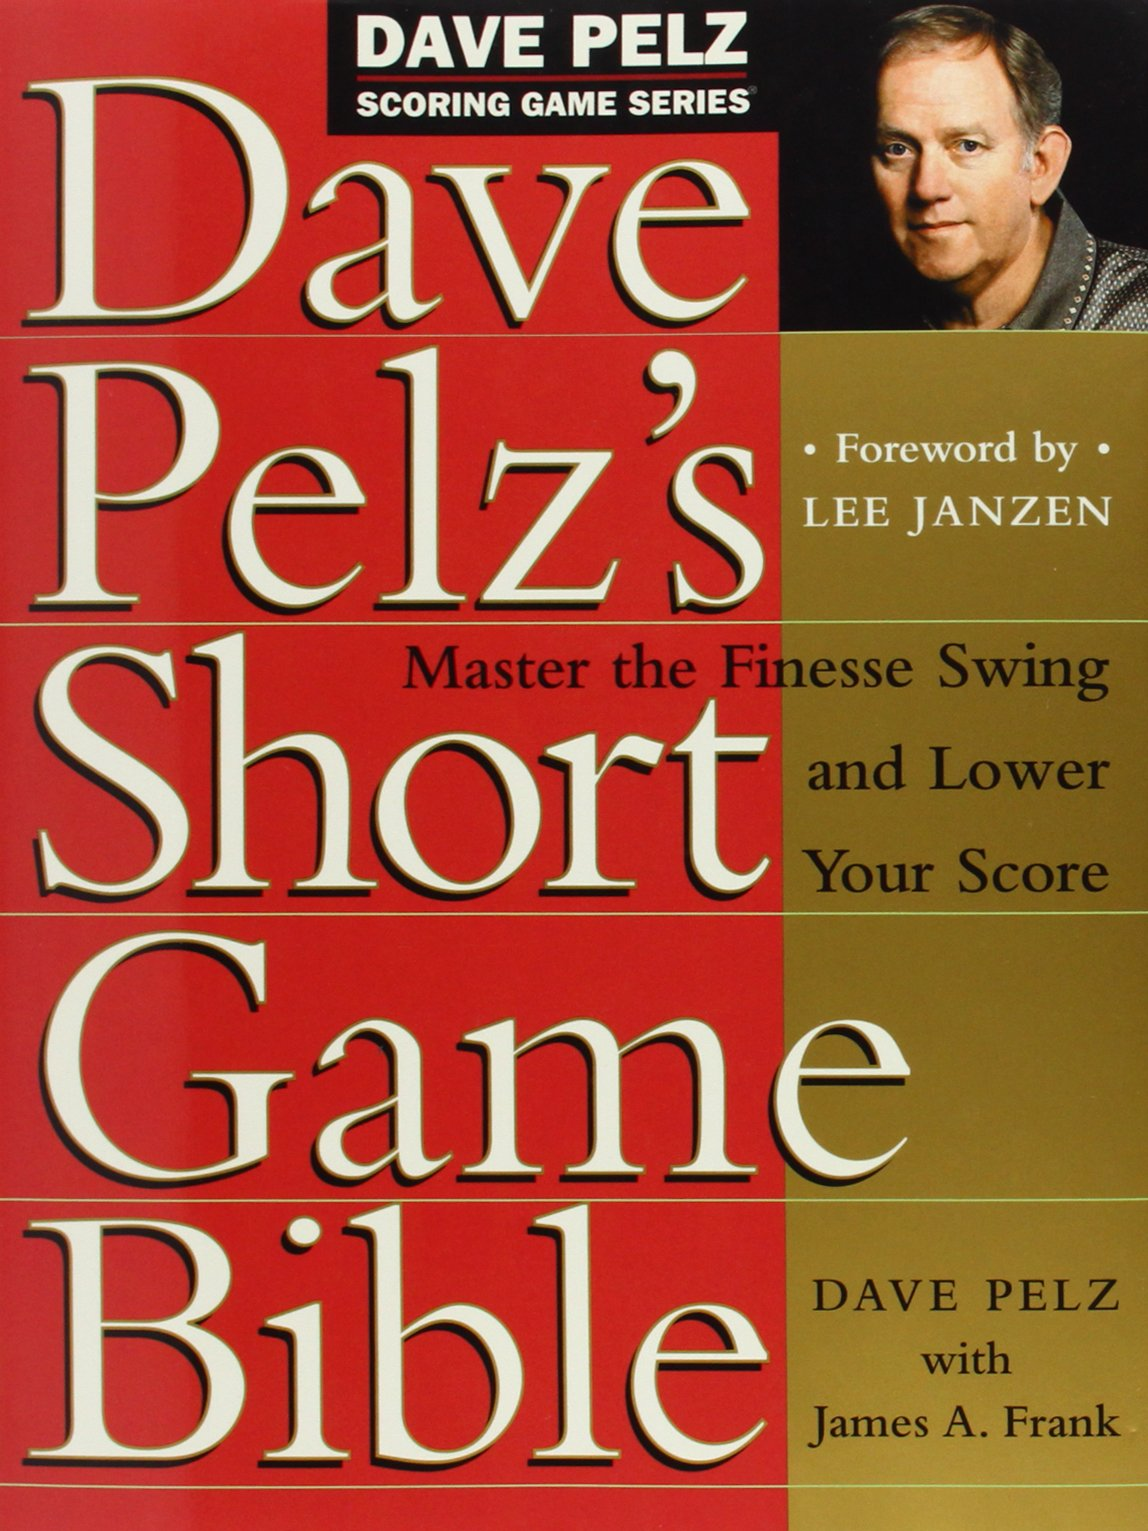 dave-pelz-s-short-game-bible-master-the-finesse-swing-and-lower-your-score-dave-pelz-scoring-game-series